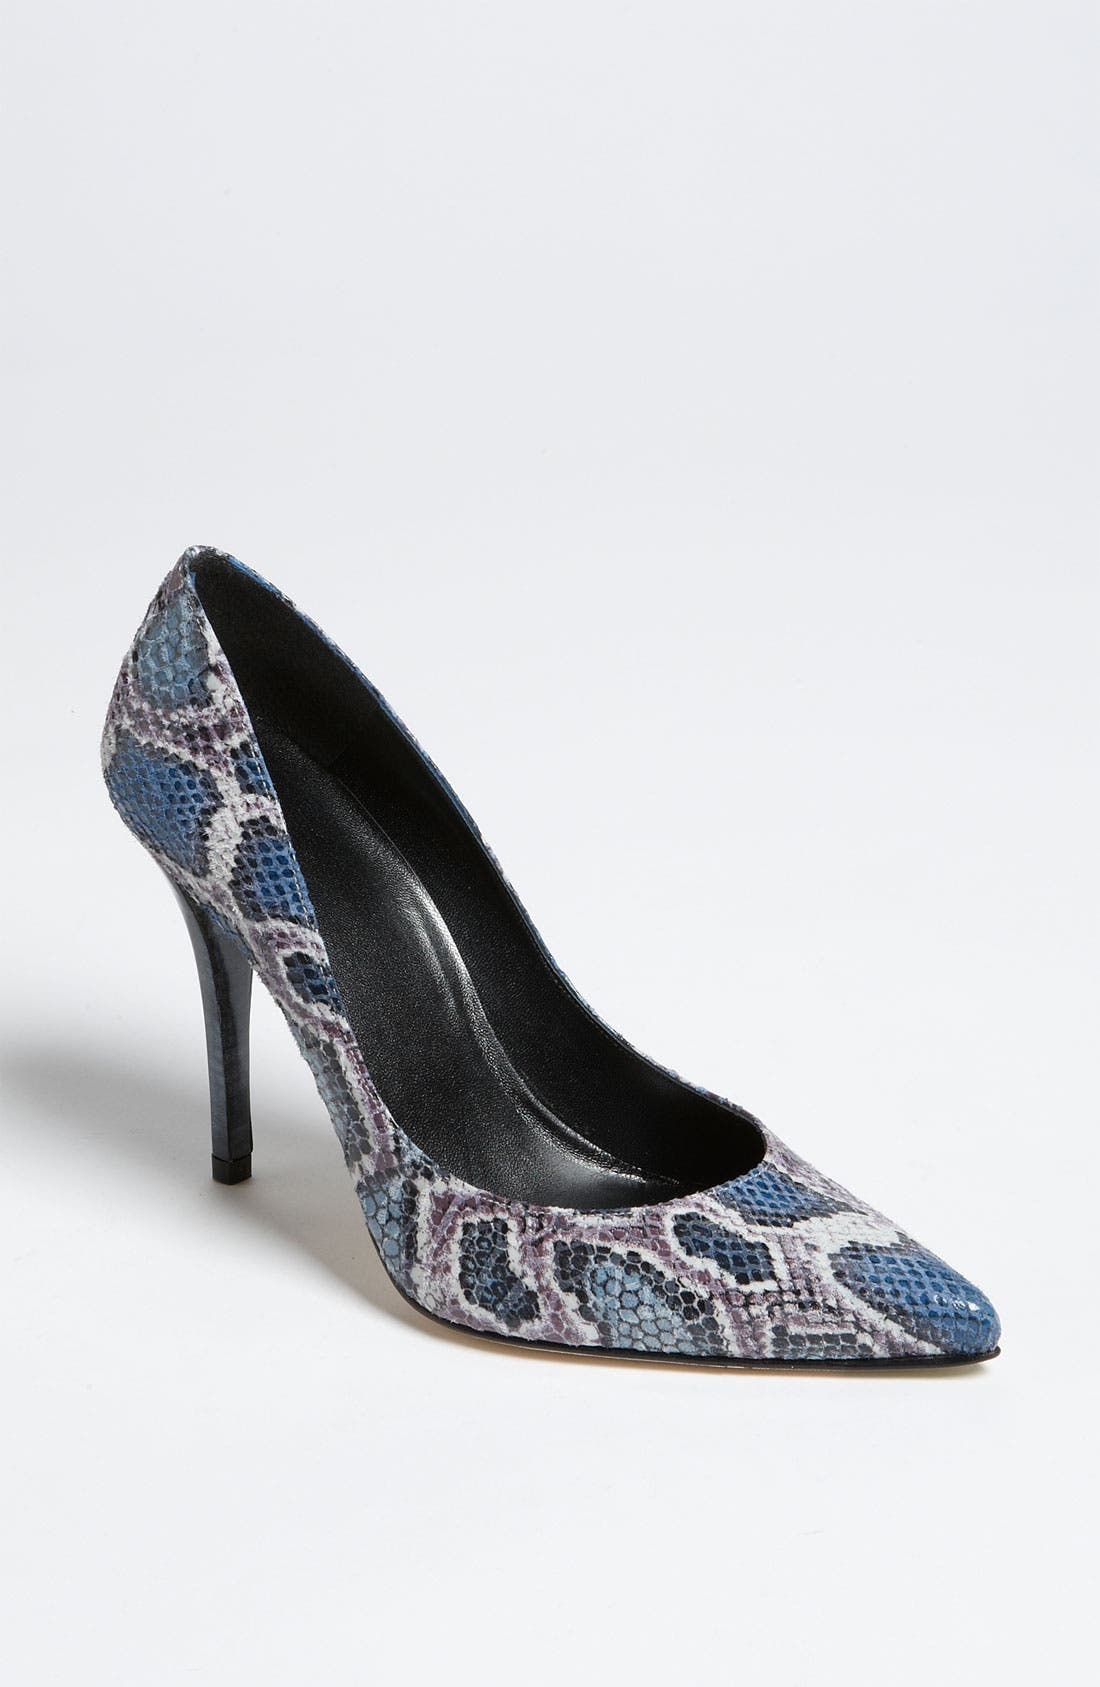 Alternate Image 1 Selected - Stuart Weitzman 'Naughty' Pump